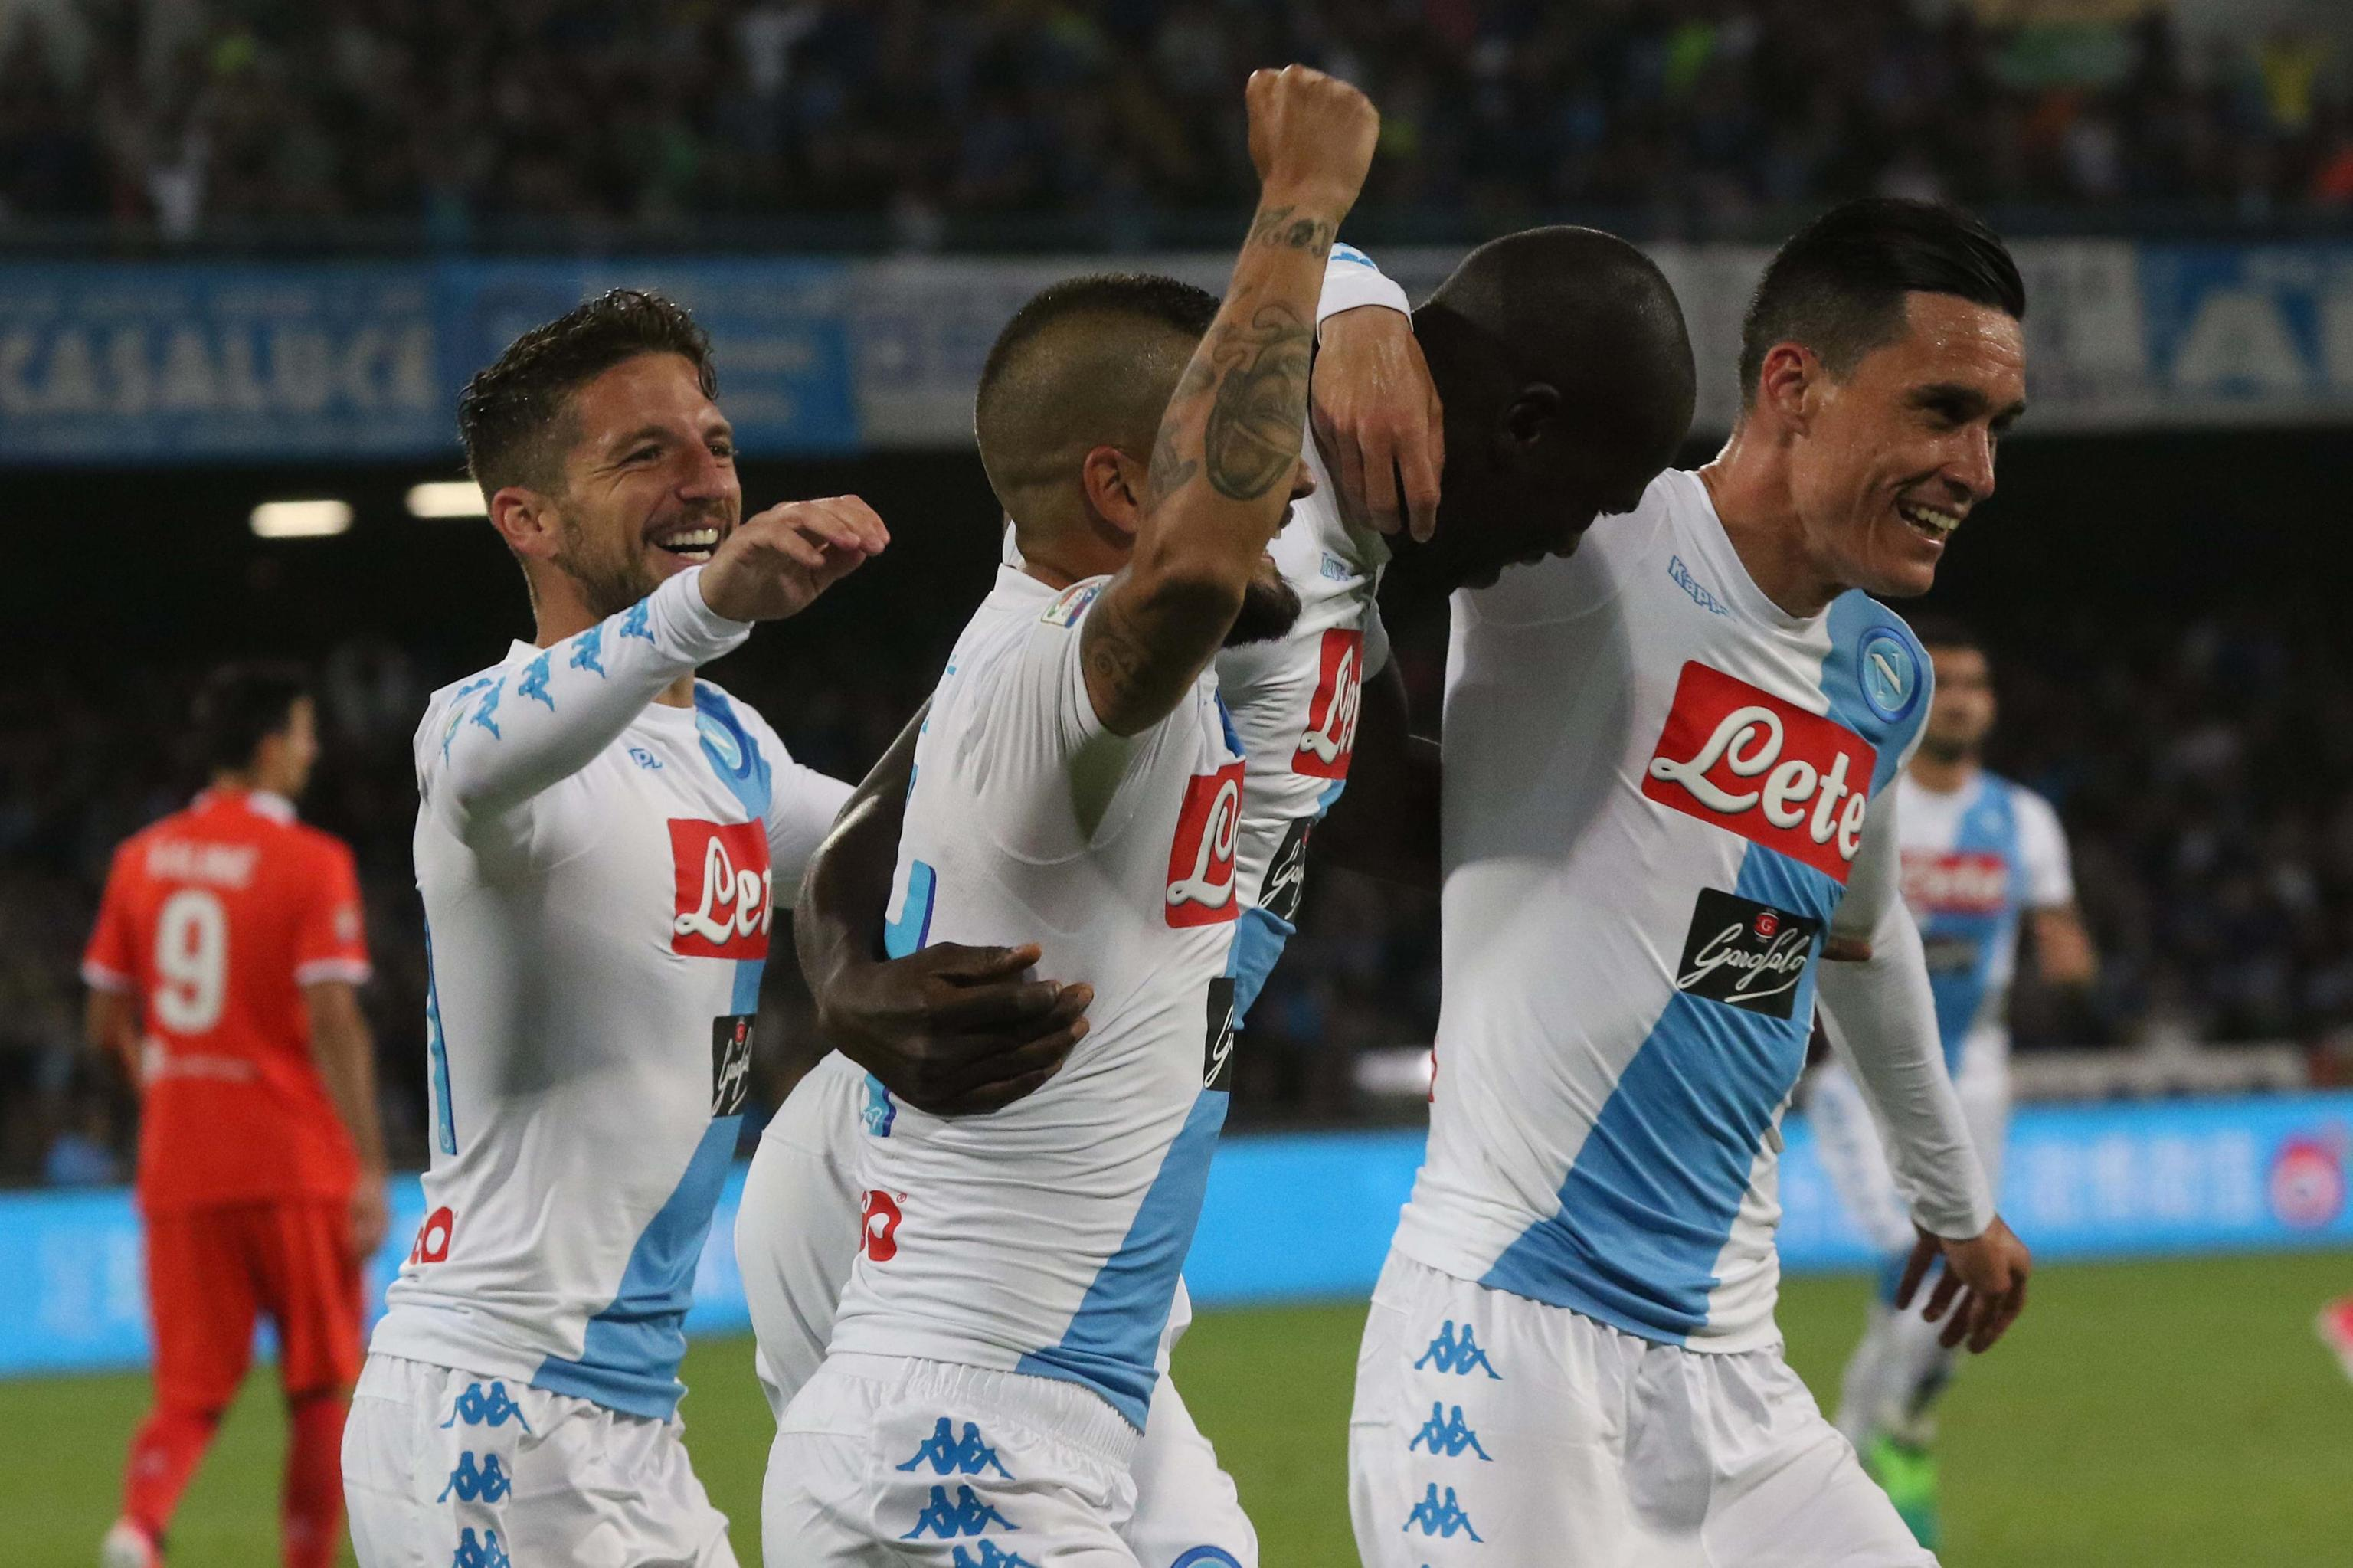 Napoli's Kalidou Koulibaly (R) jubilates with his teammates after scoring the goal during the Italian Serie A soccer match SSC Napoli vs ACF Fiorentina at San Paolo stadium in Naples, Italy, 20 May 2017. ANSA/CIRO FUSCO